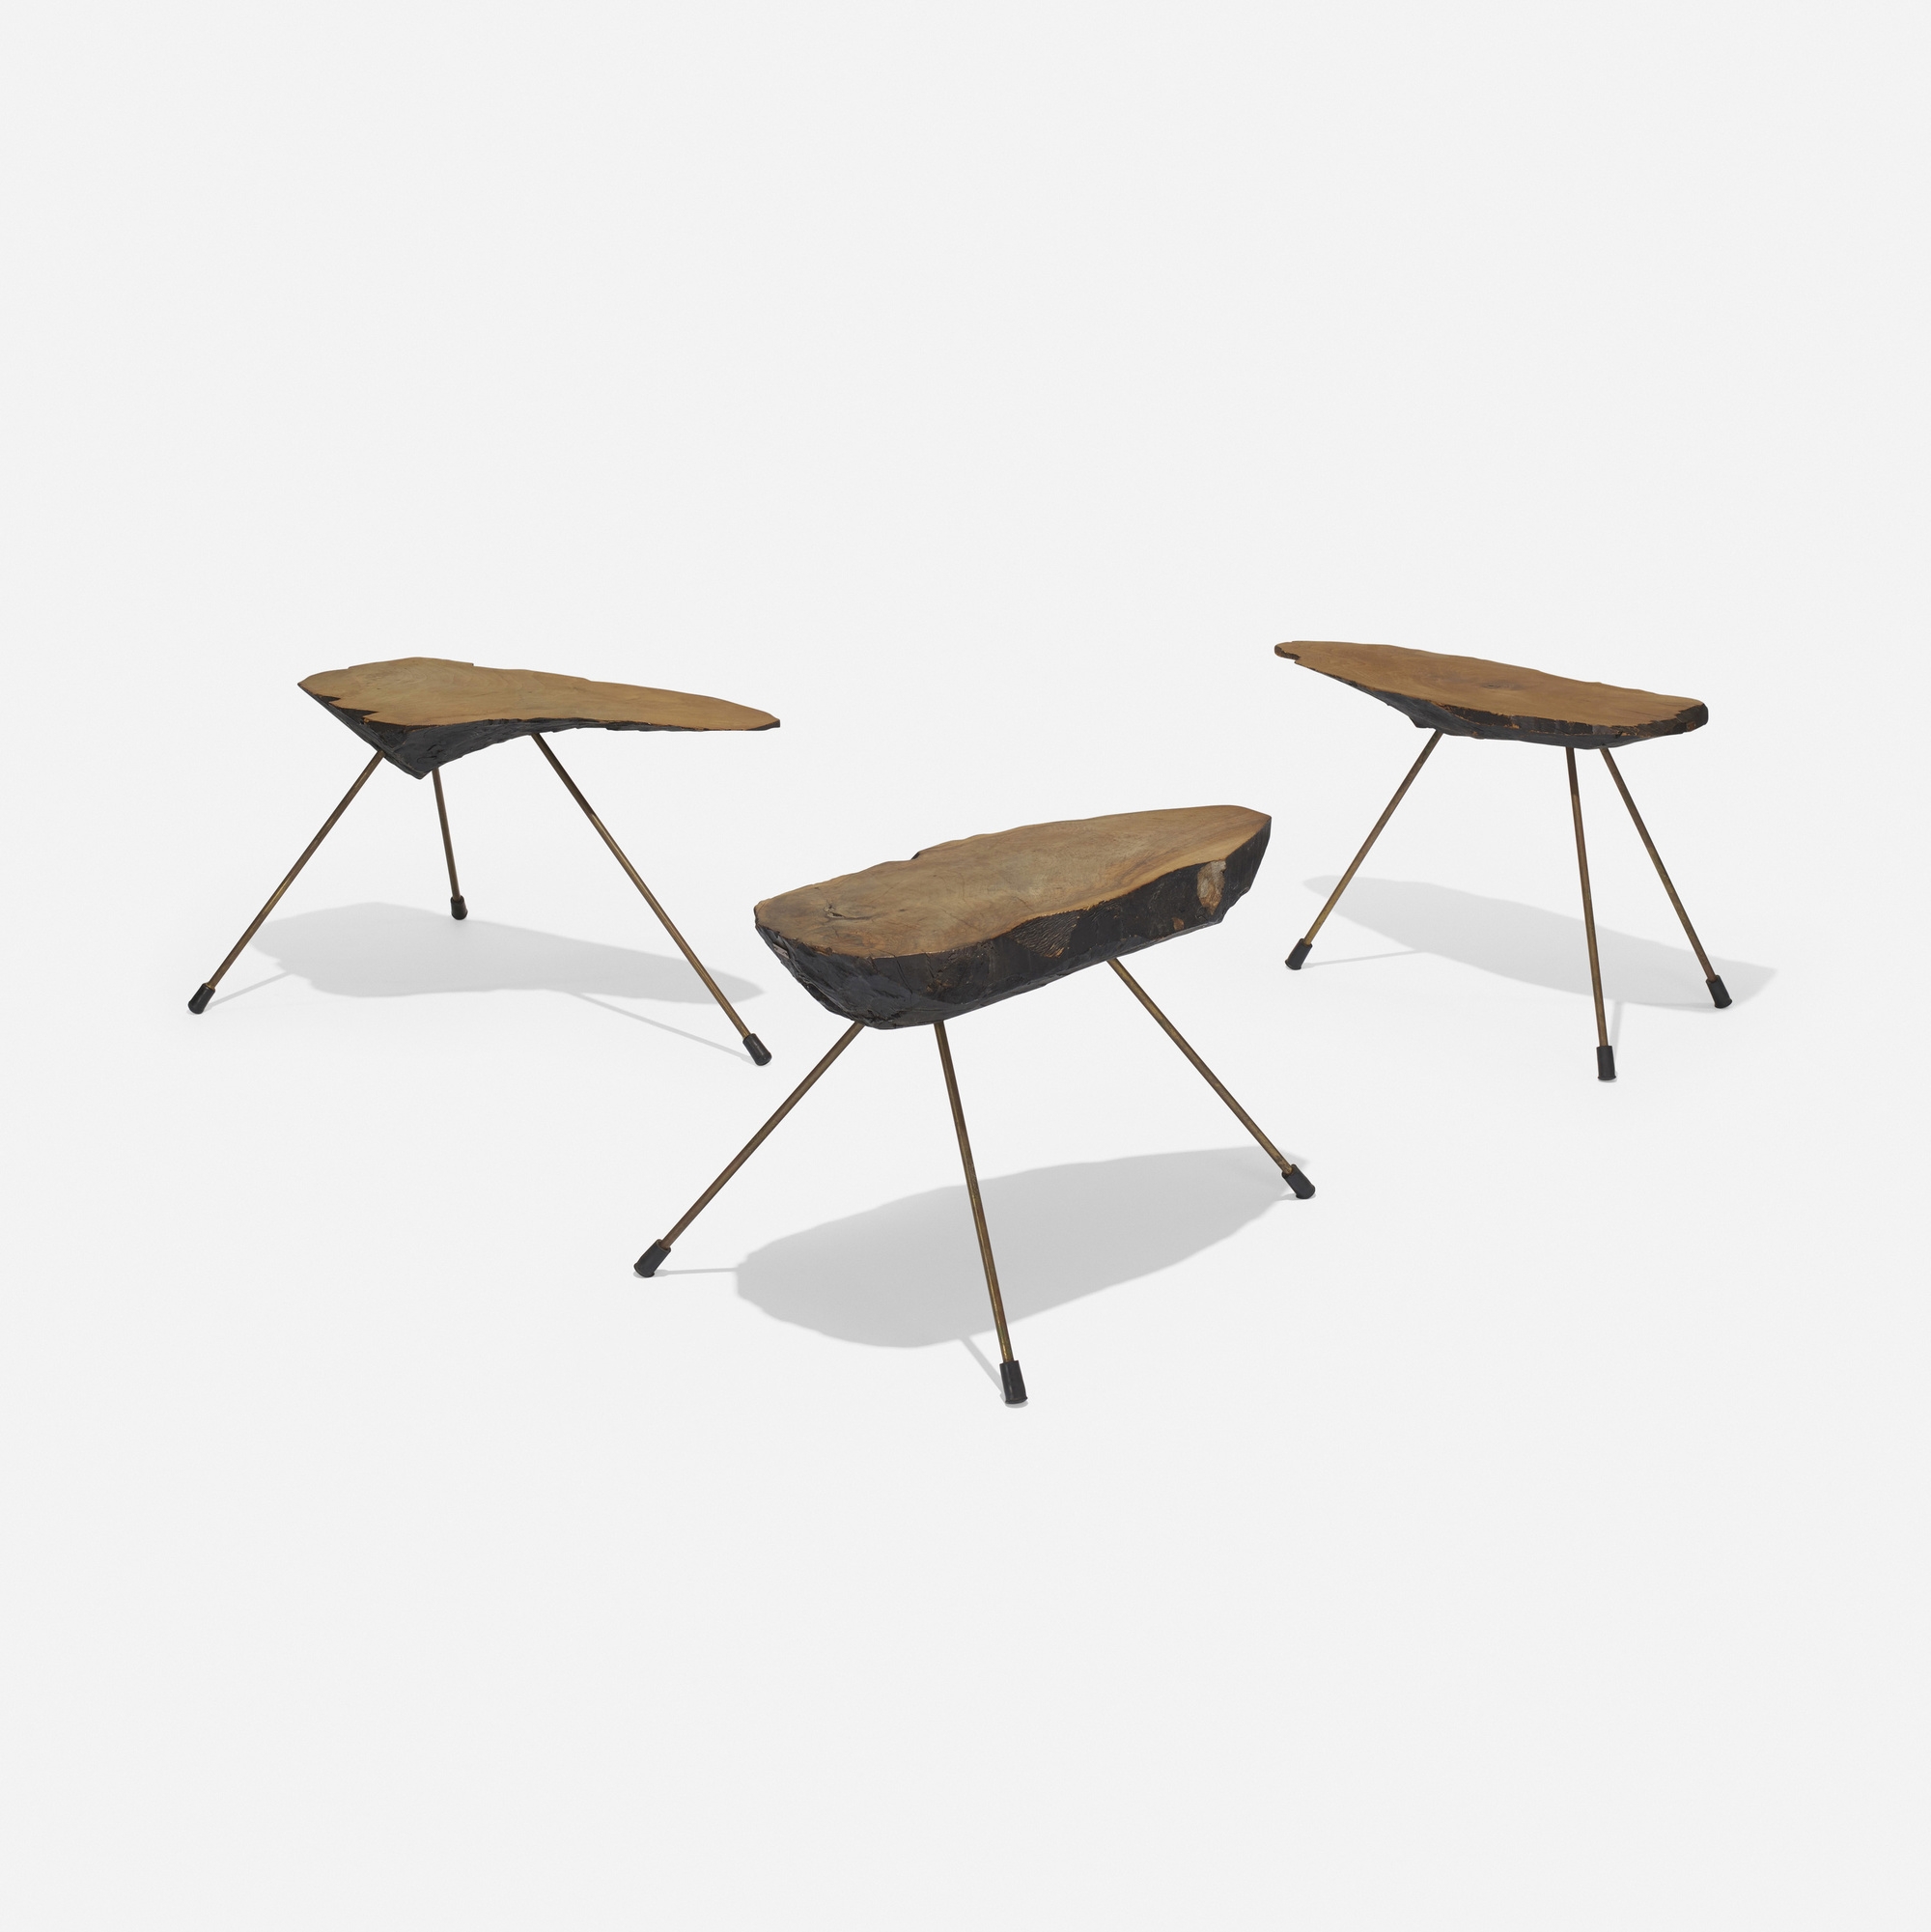 242: Carl Auböck II / occasional tables, set of three (1 of 4)